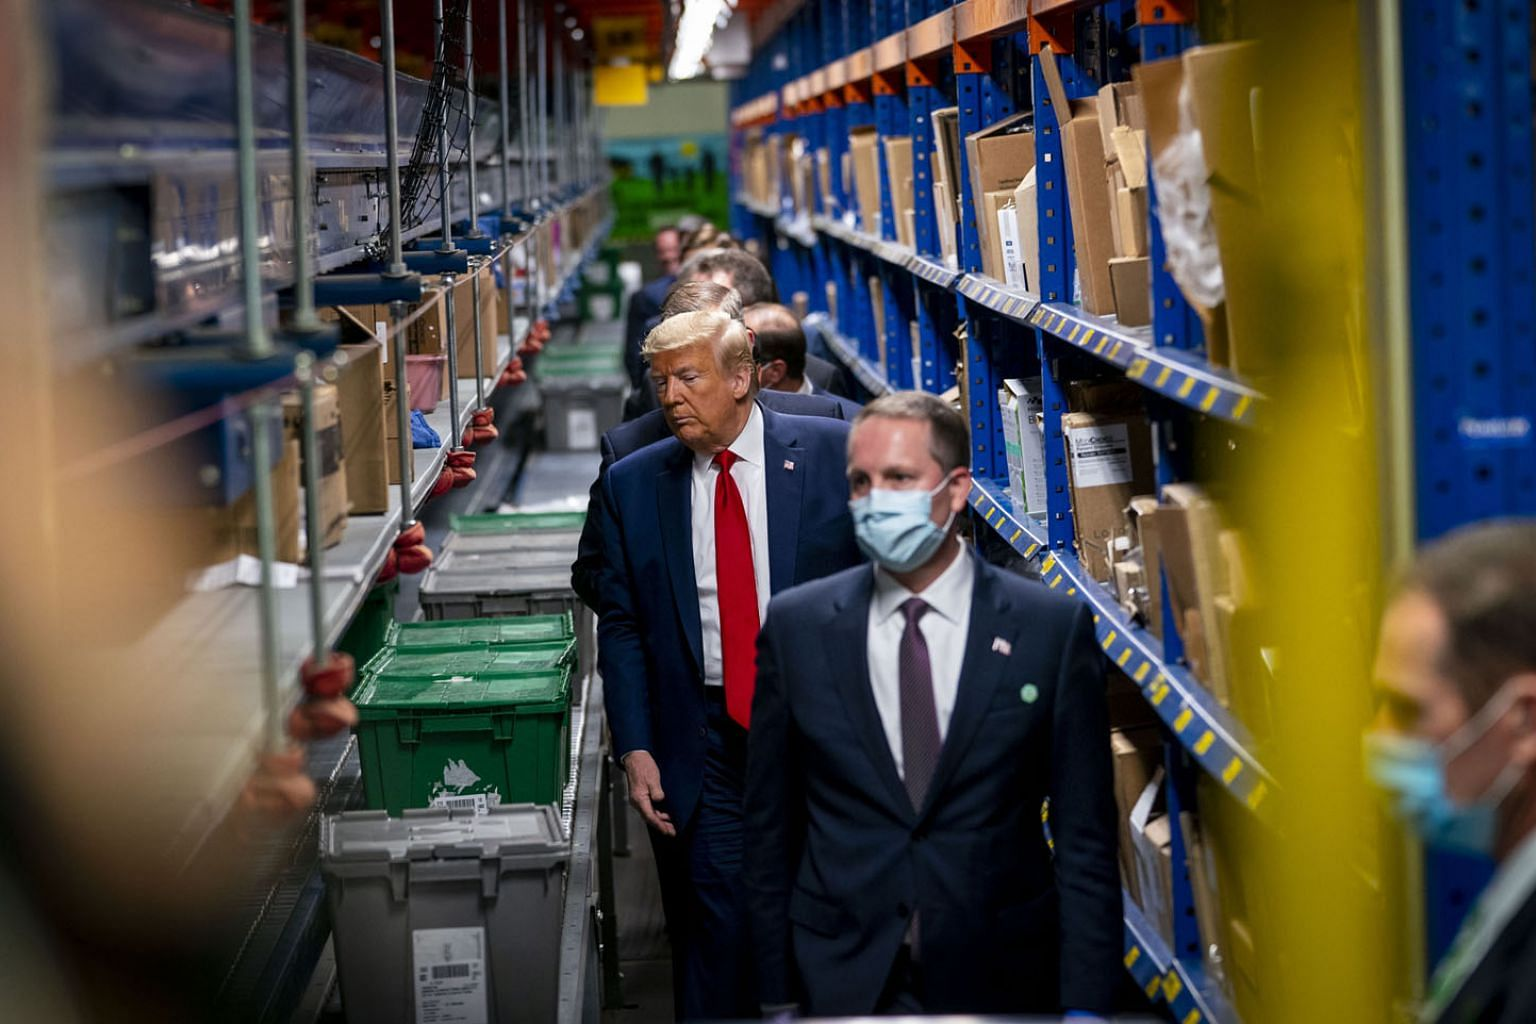 US President Donald Trump touring medical supply distribution company Owens & Minor in Pennsylvania, a battleground state, on Thursday. The US has been stung by exposure of its dependence on China for the medical equipment needed to fight the coronav